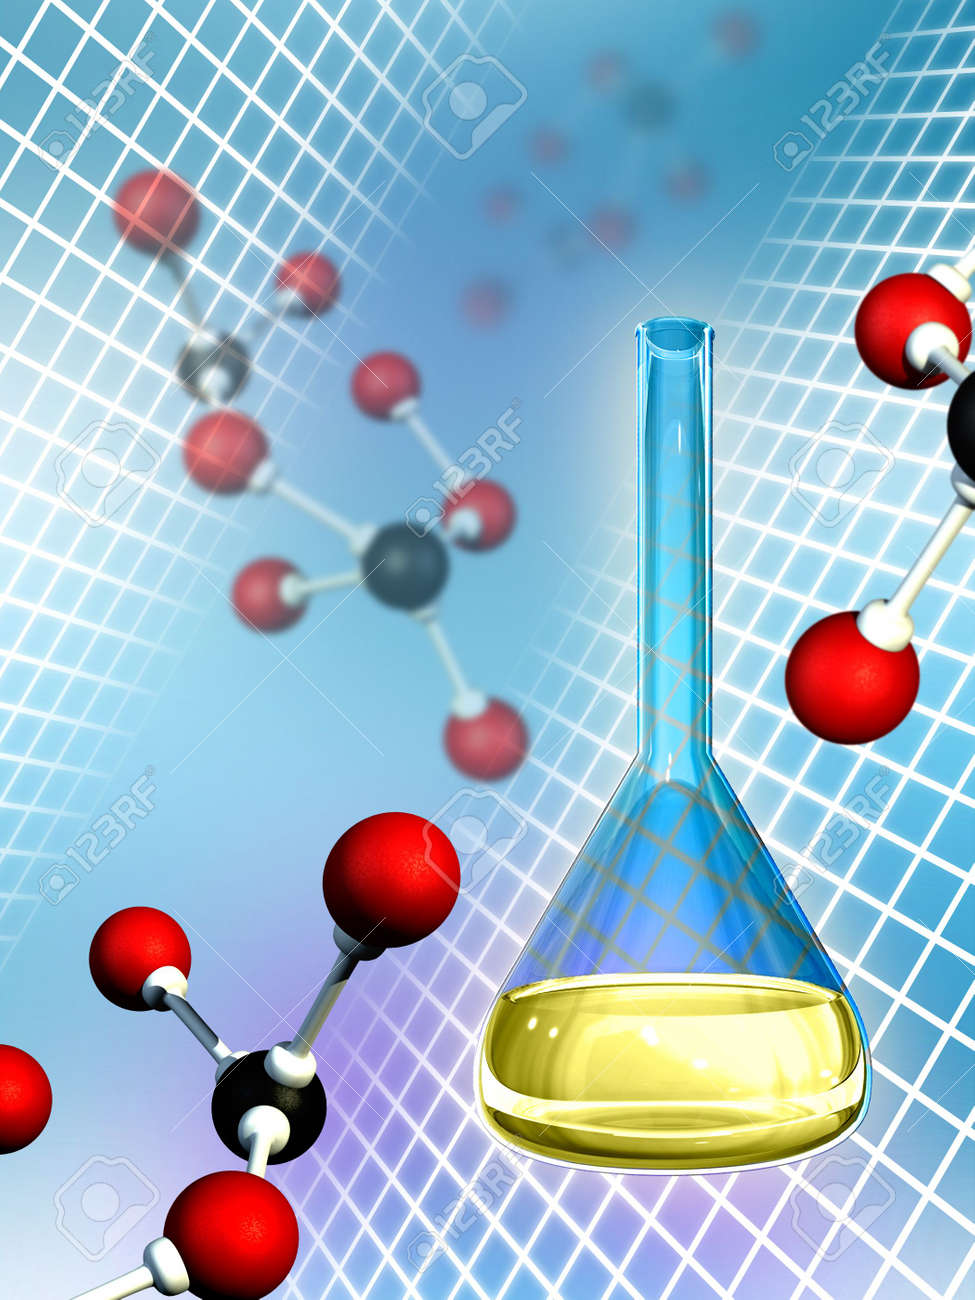 Molecules and lab flask. Digital illustration. Stock Photo - 2972546